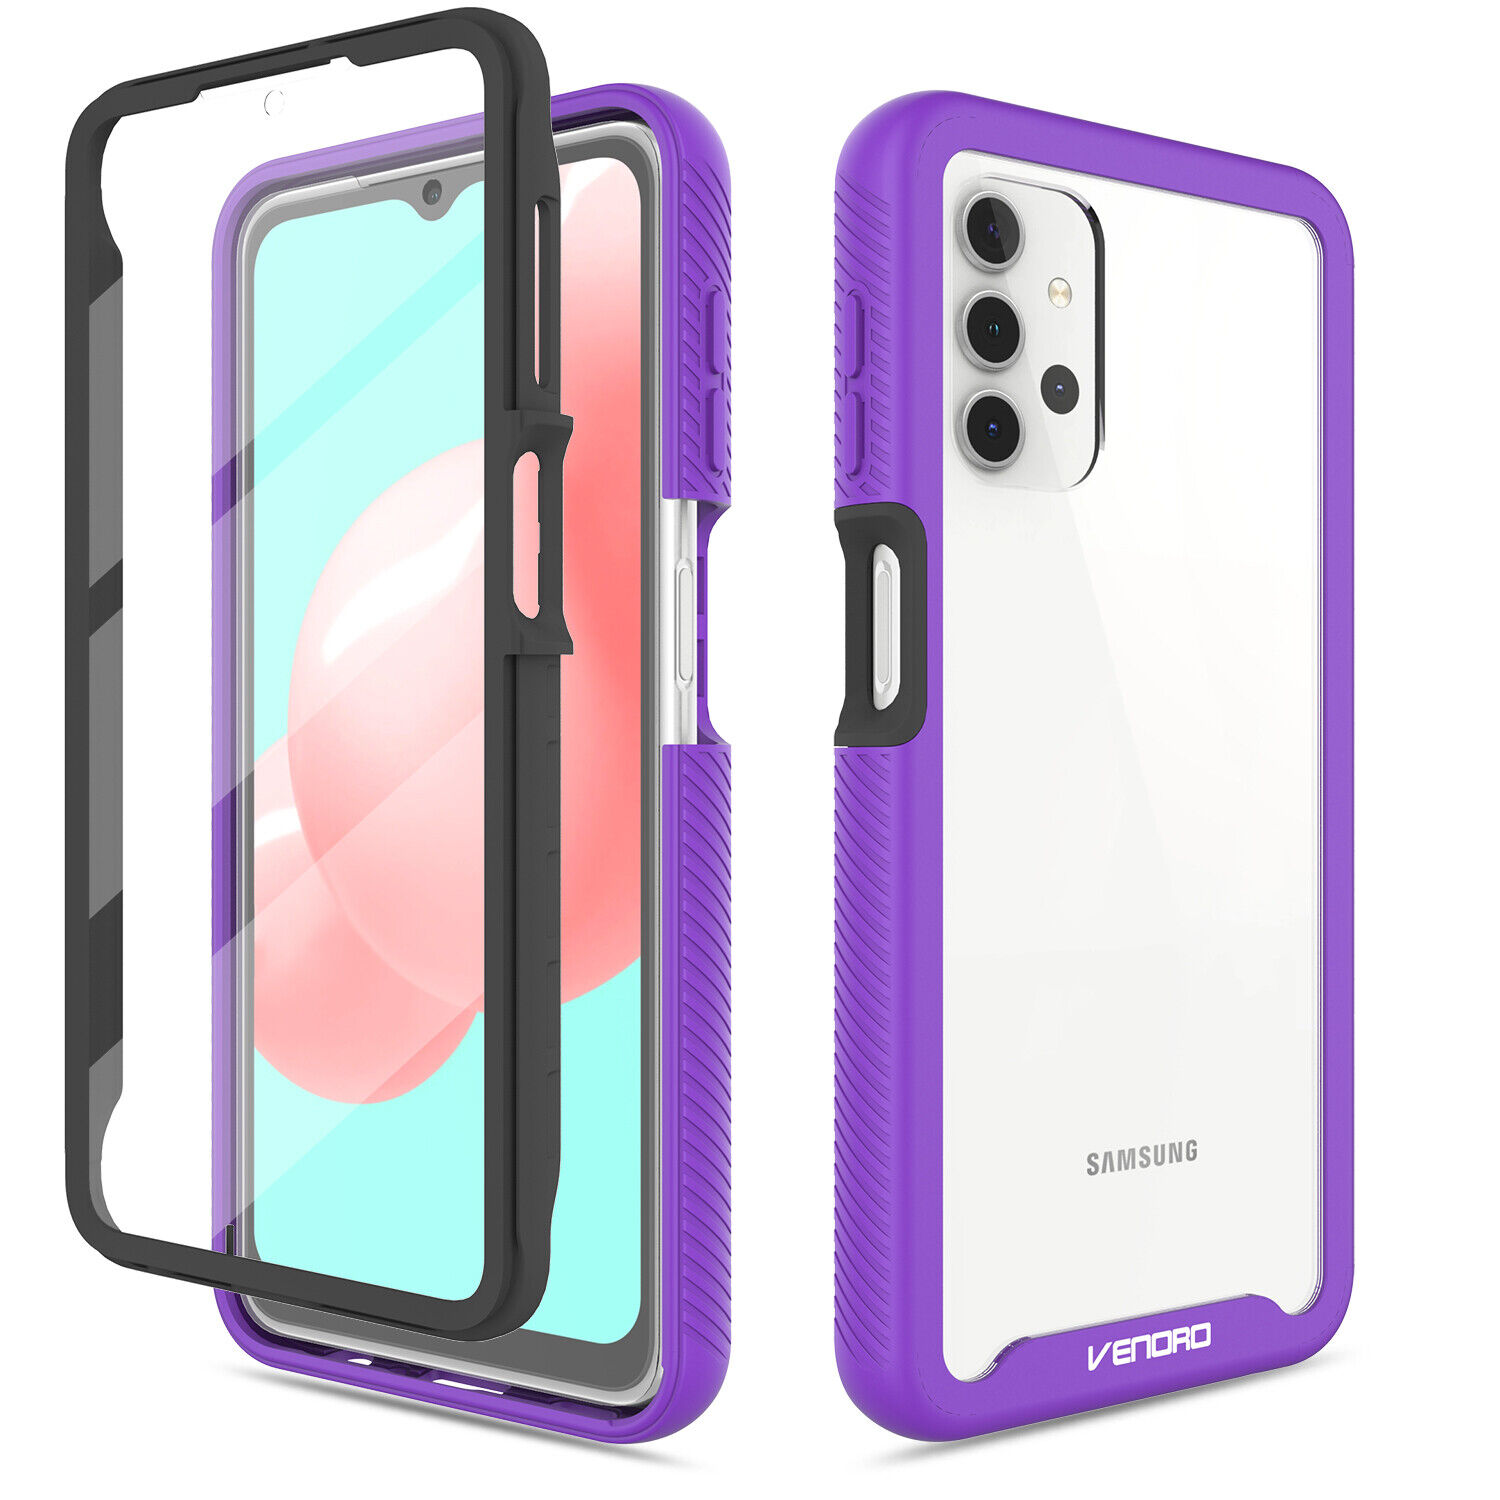 For Samsung Galaxy A32 5G Clear Case Hybrid Cover With Built-in Screen Protector Cases, Covers & Skins